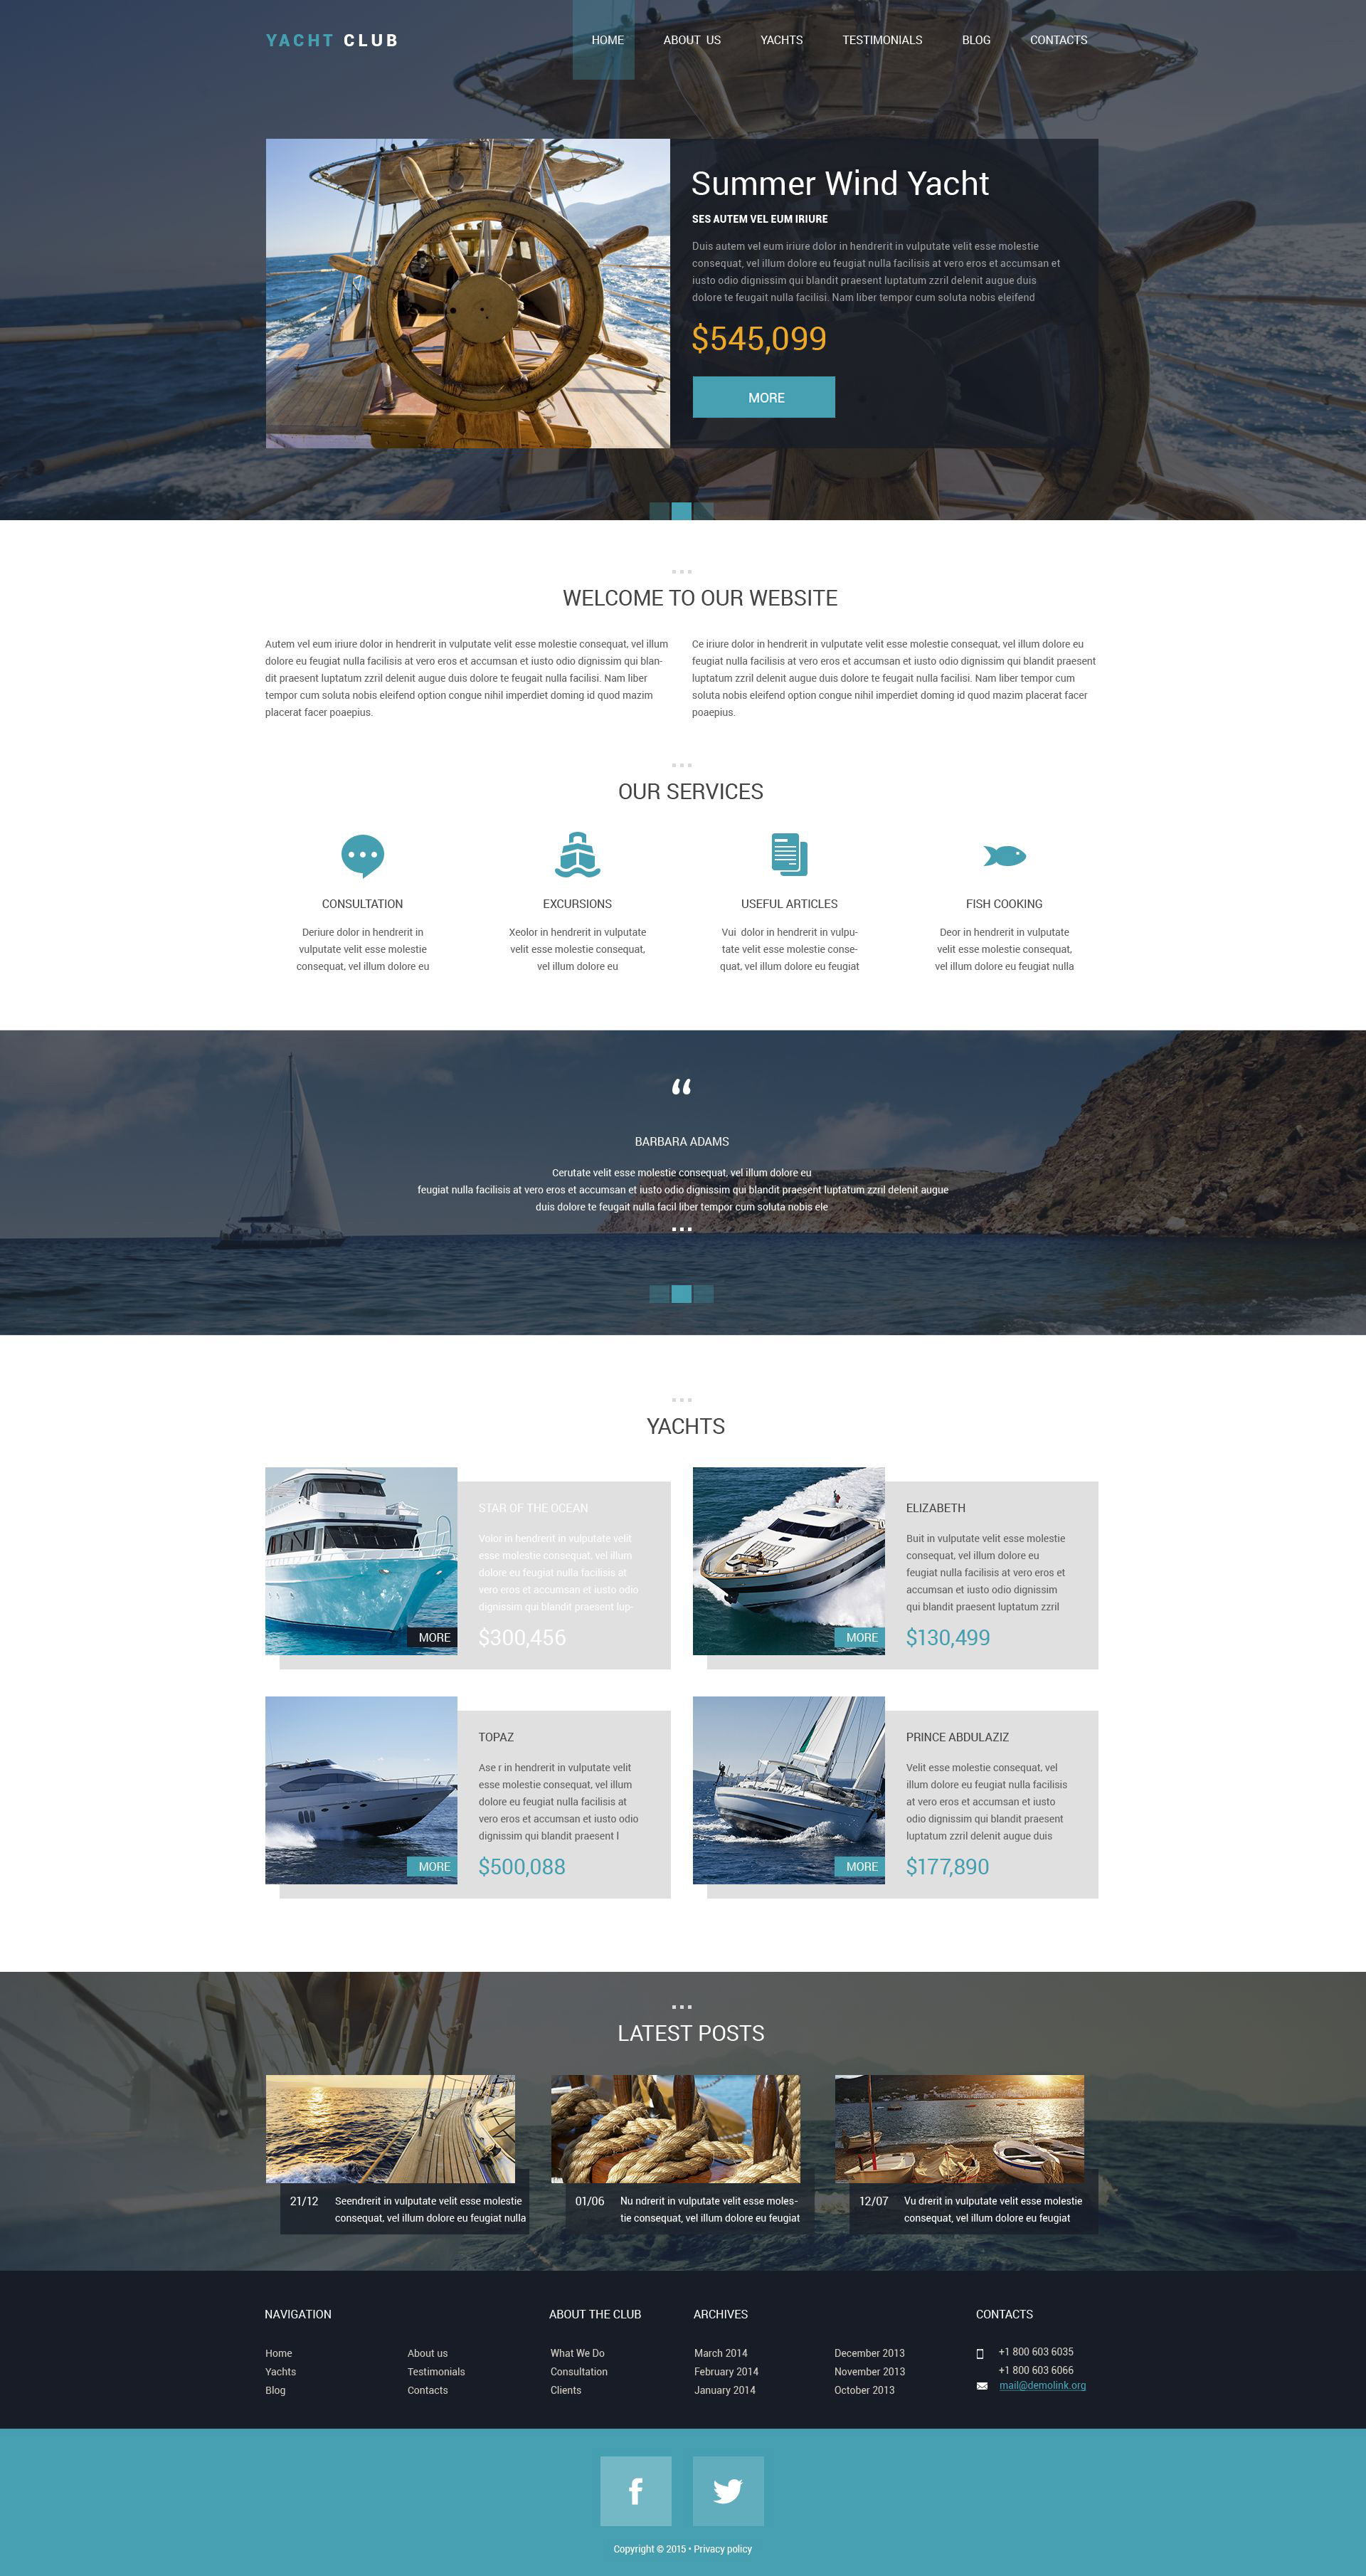 Yacht club drupal template 53349 yacht club drupal template toneelgroepblik Image collections